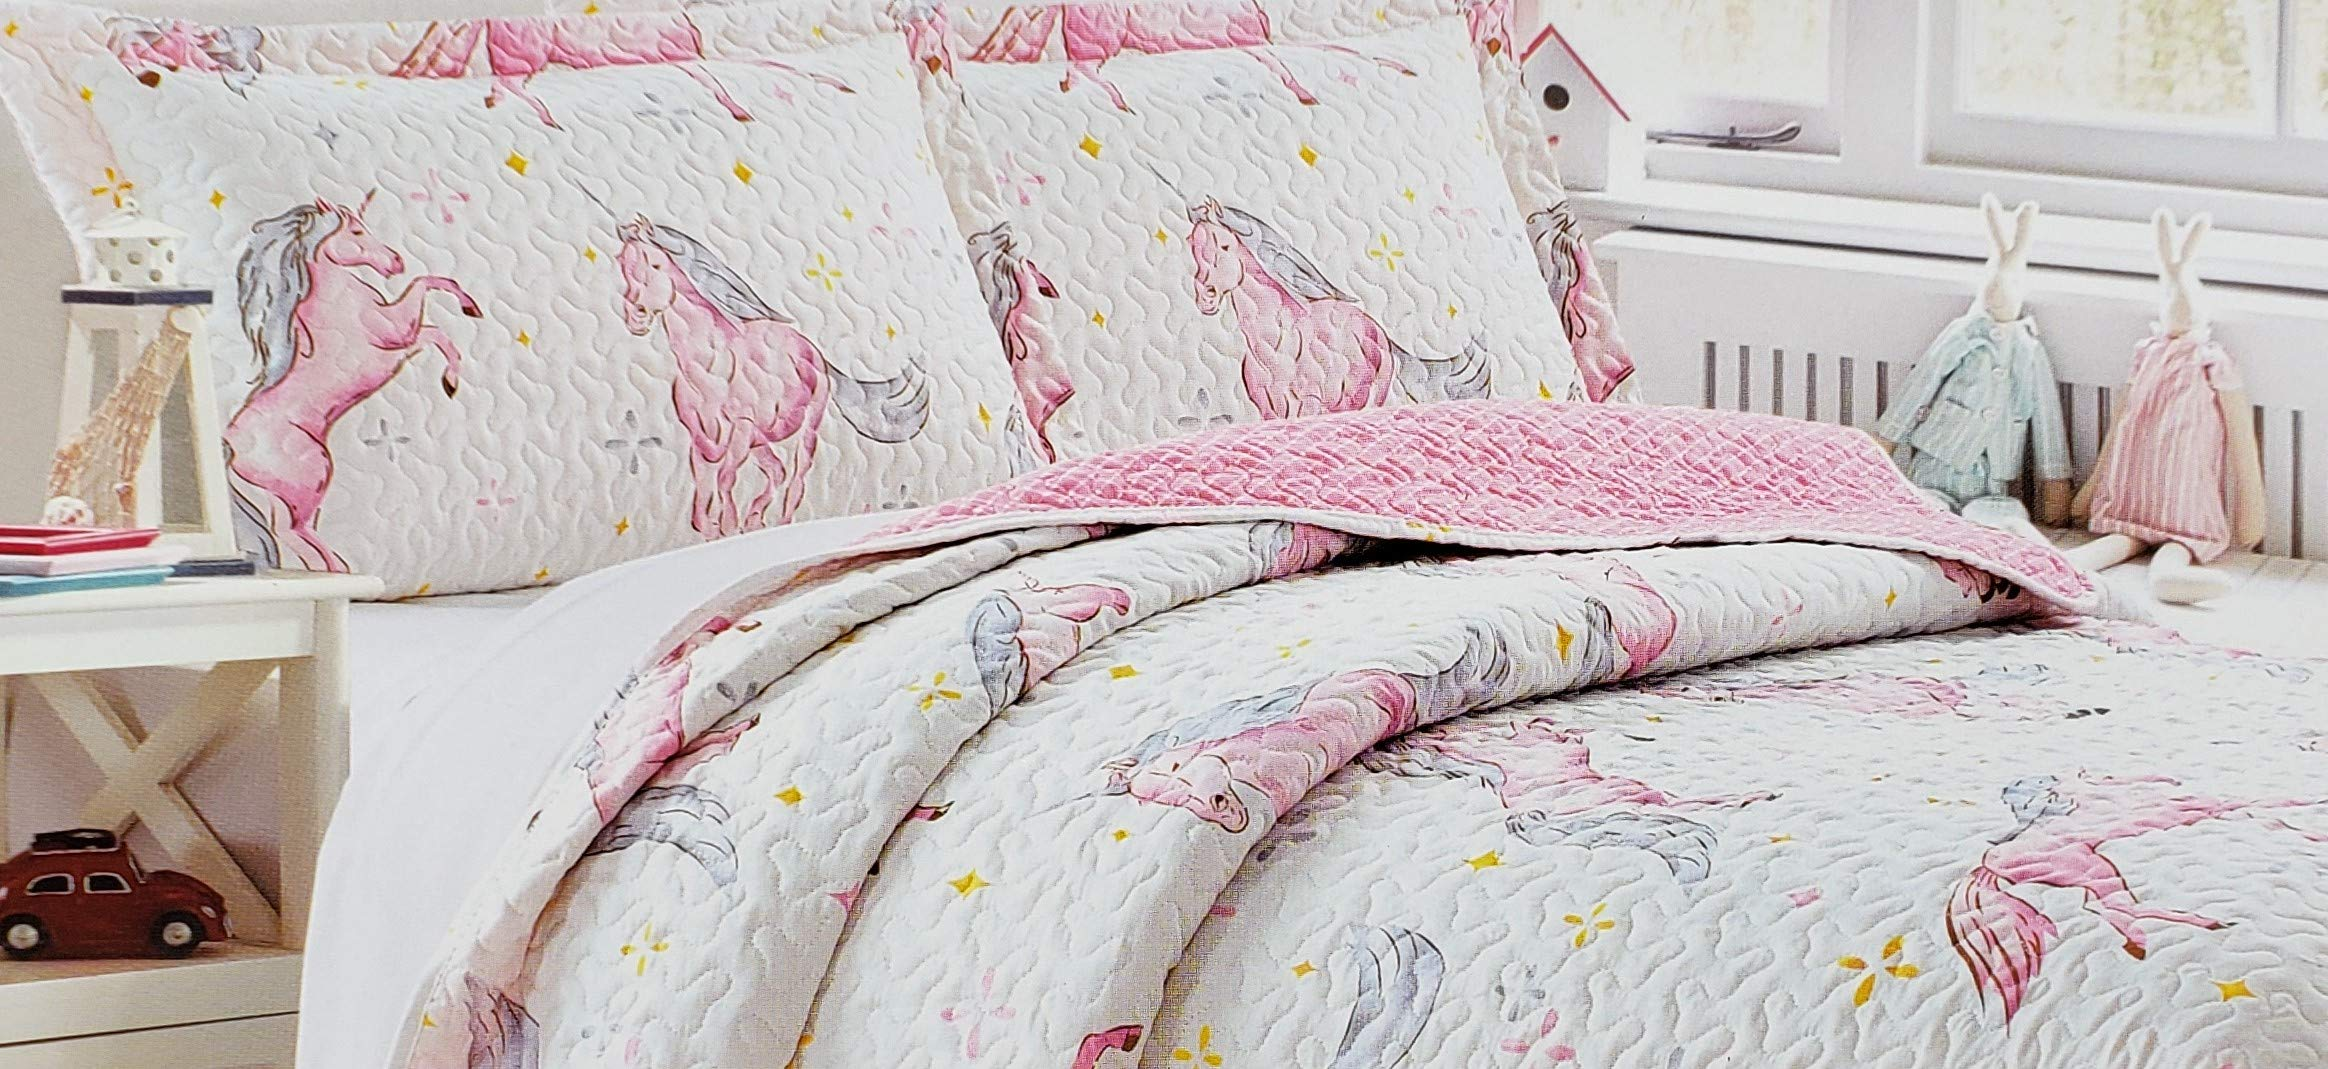 Home & Main Kids 2 Piece Reversible Plush Quilt & Pillow Sham Set (Twin, Pink Unicorn)